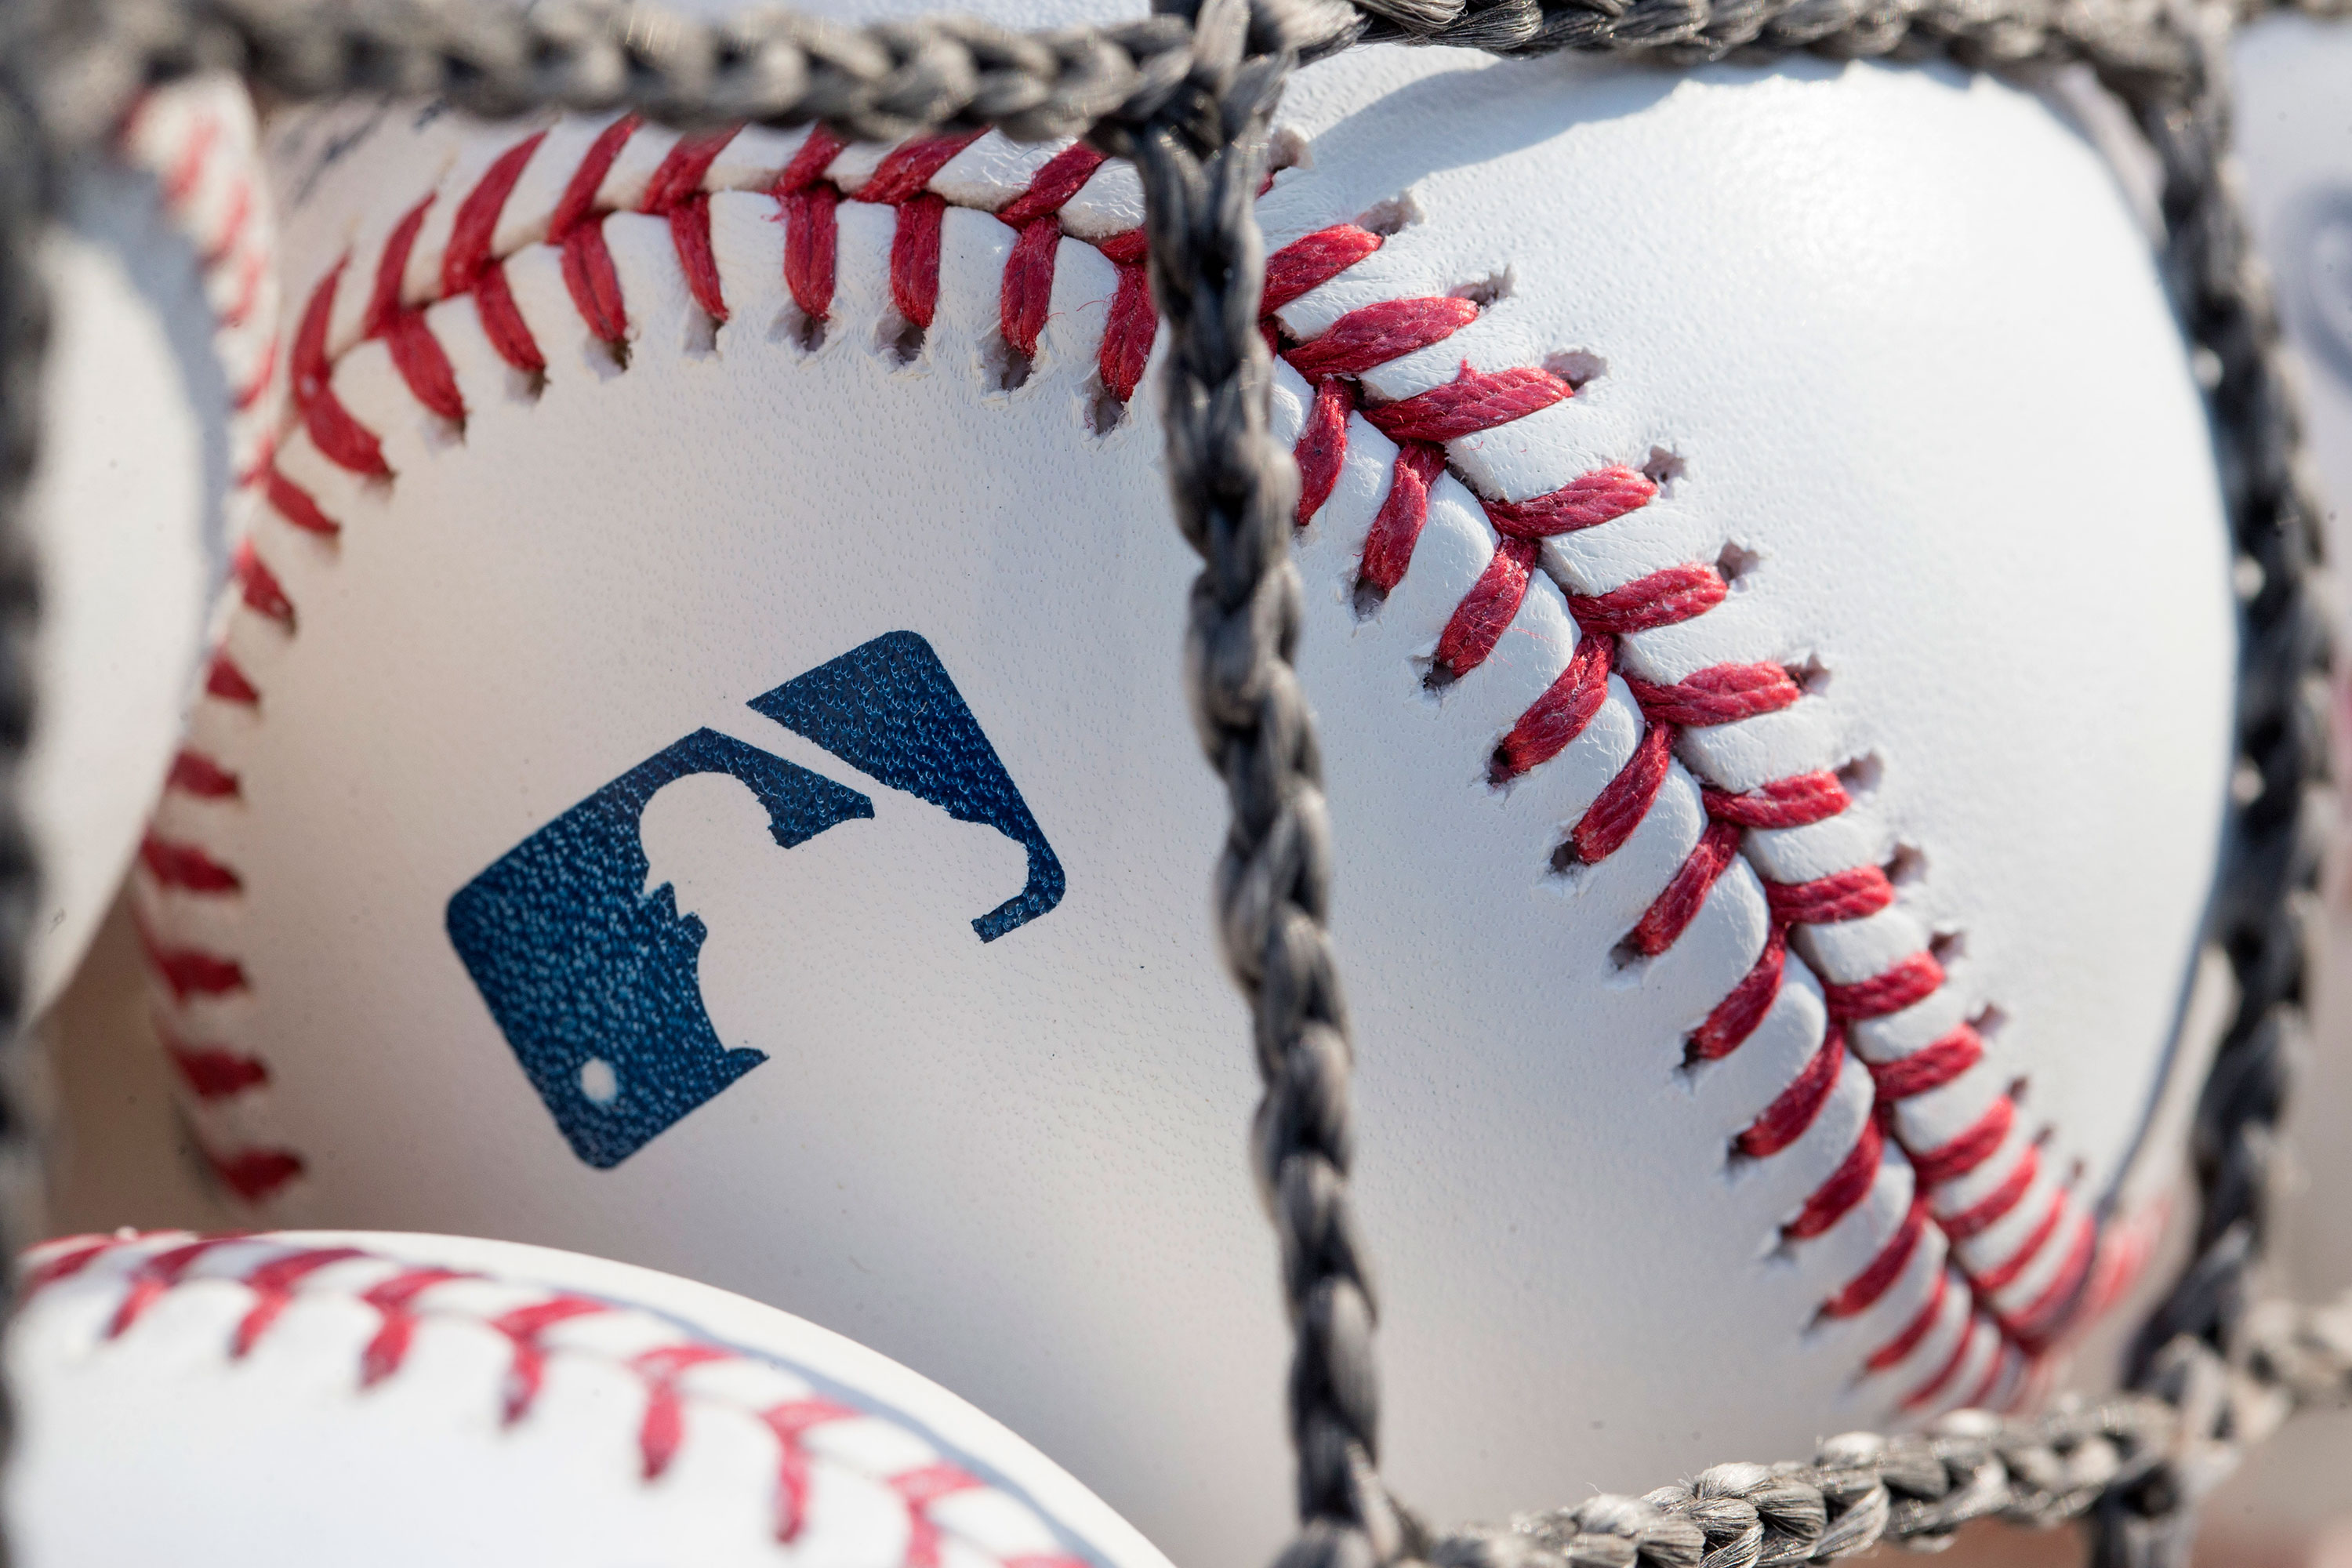 MLB players and staff will report to their respective teams starting Wednesday, with Opening Day games on either July 23 or 24.